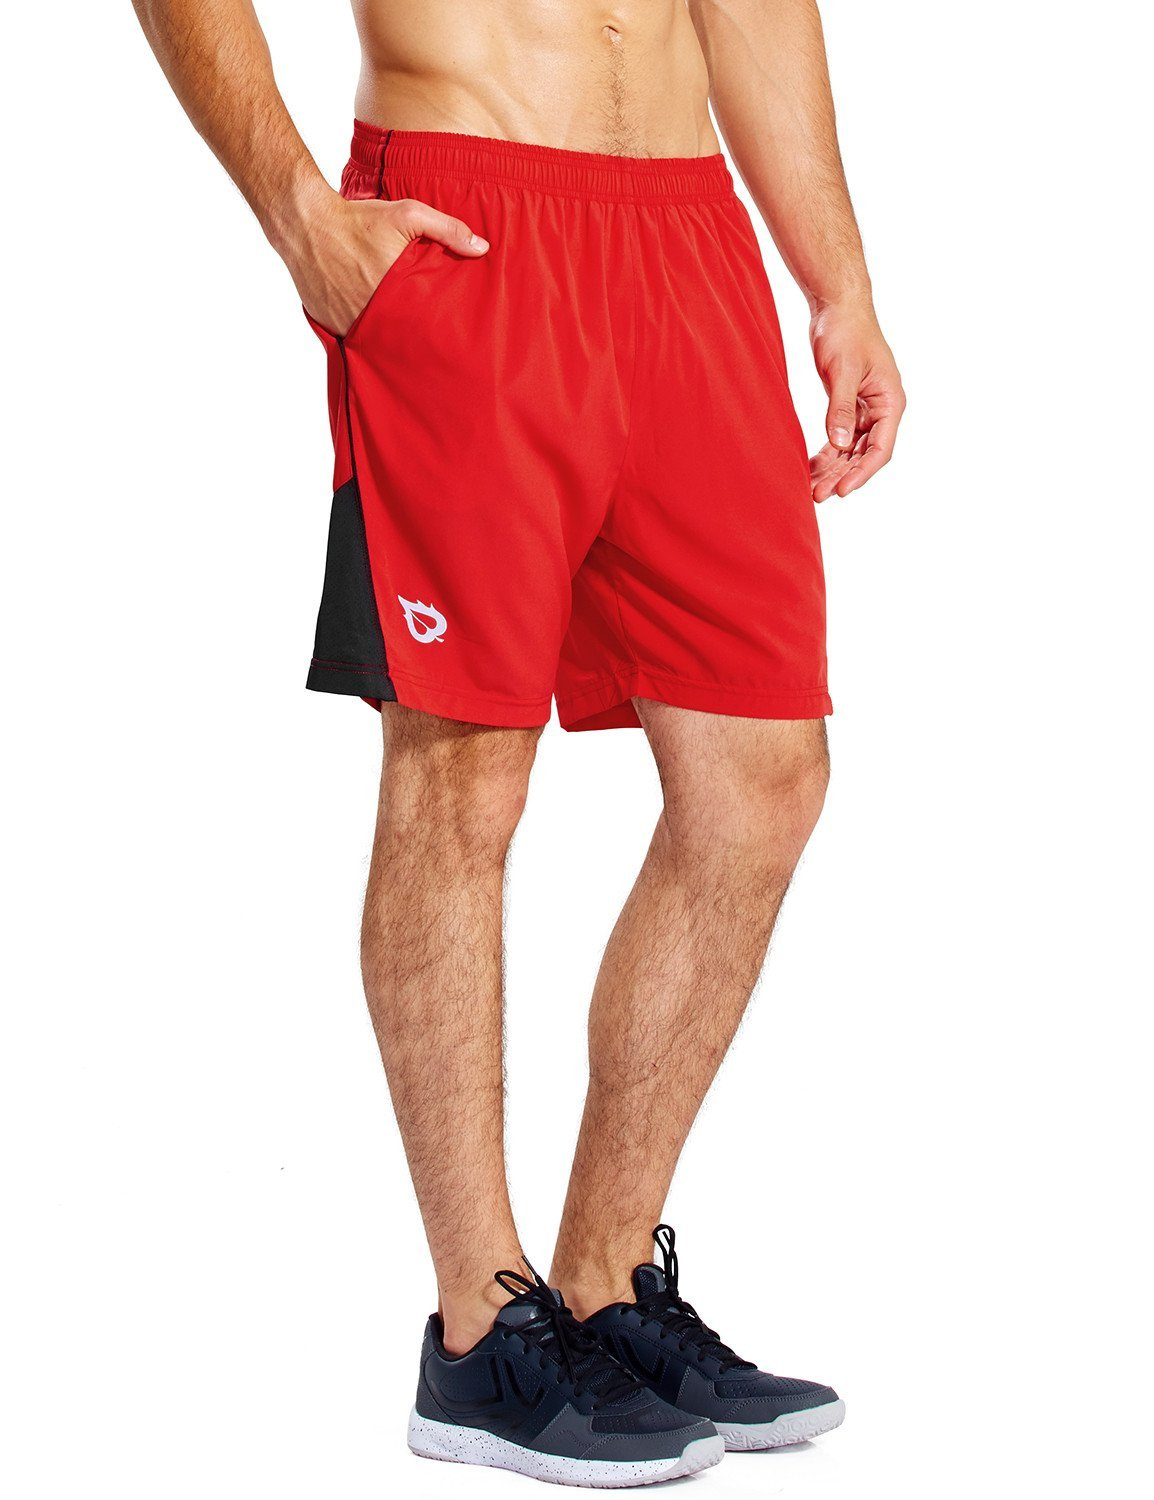 Baleaf Men's 7 Inches Quick Dry Workout Running Shorts Mesh Liner Zip Pockets Red Size S